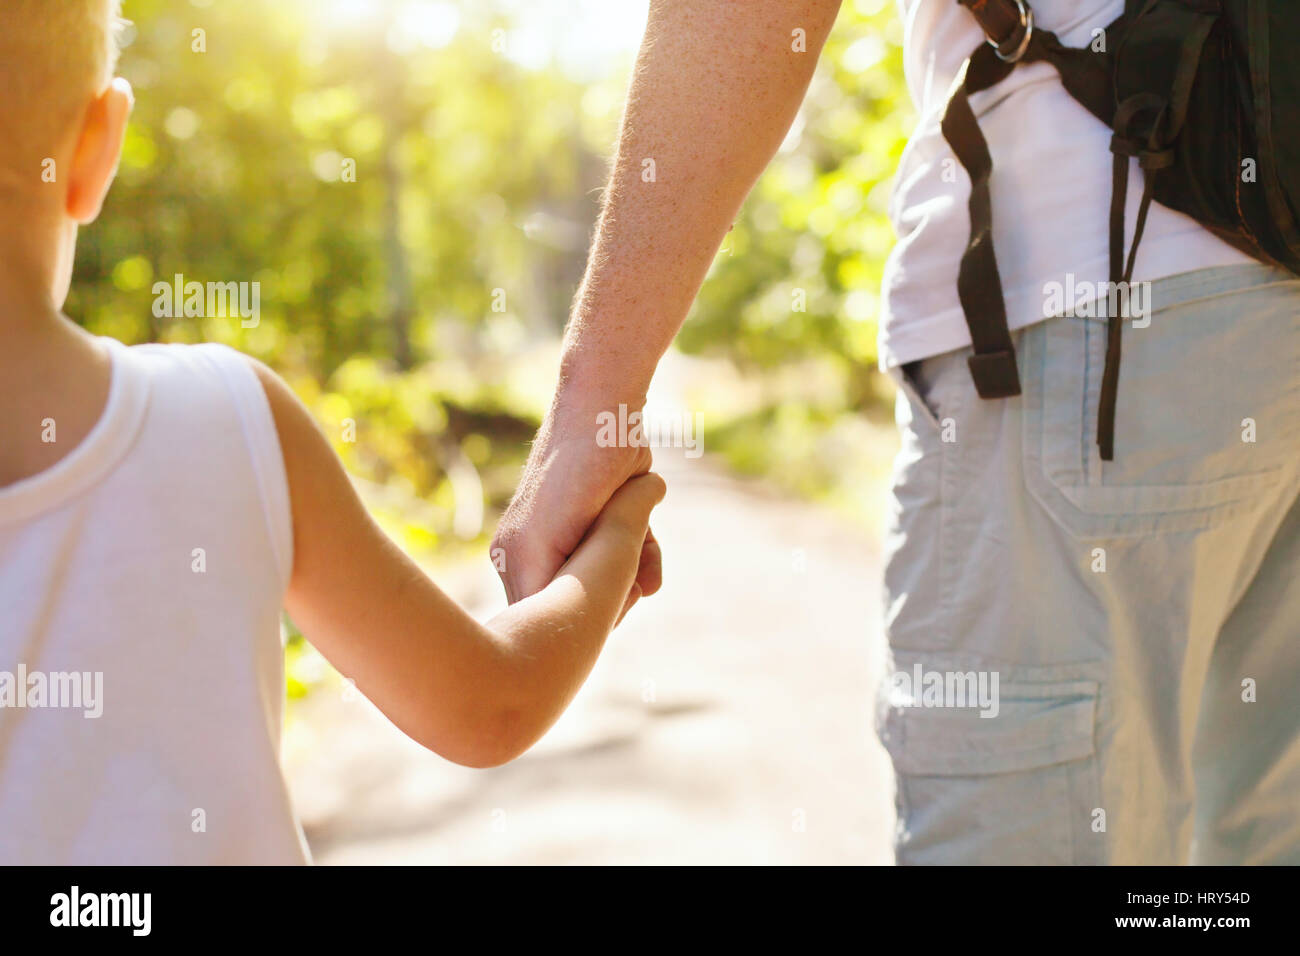 child holding hand of adult parent outside in summer park - Stock Image